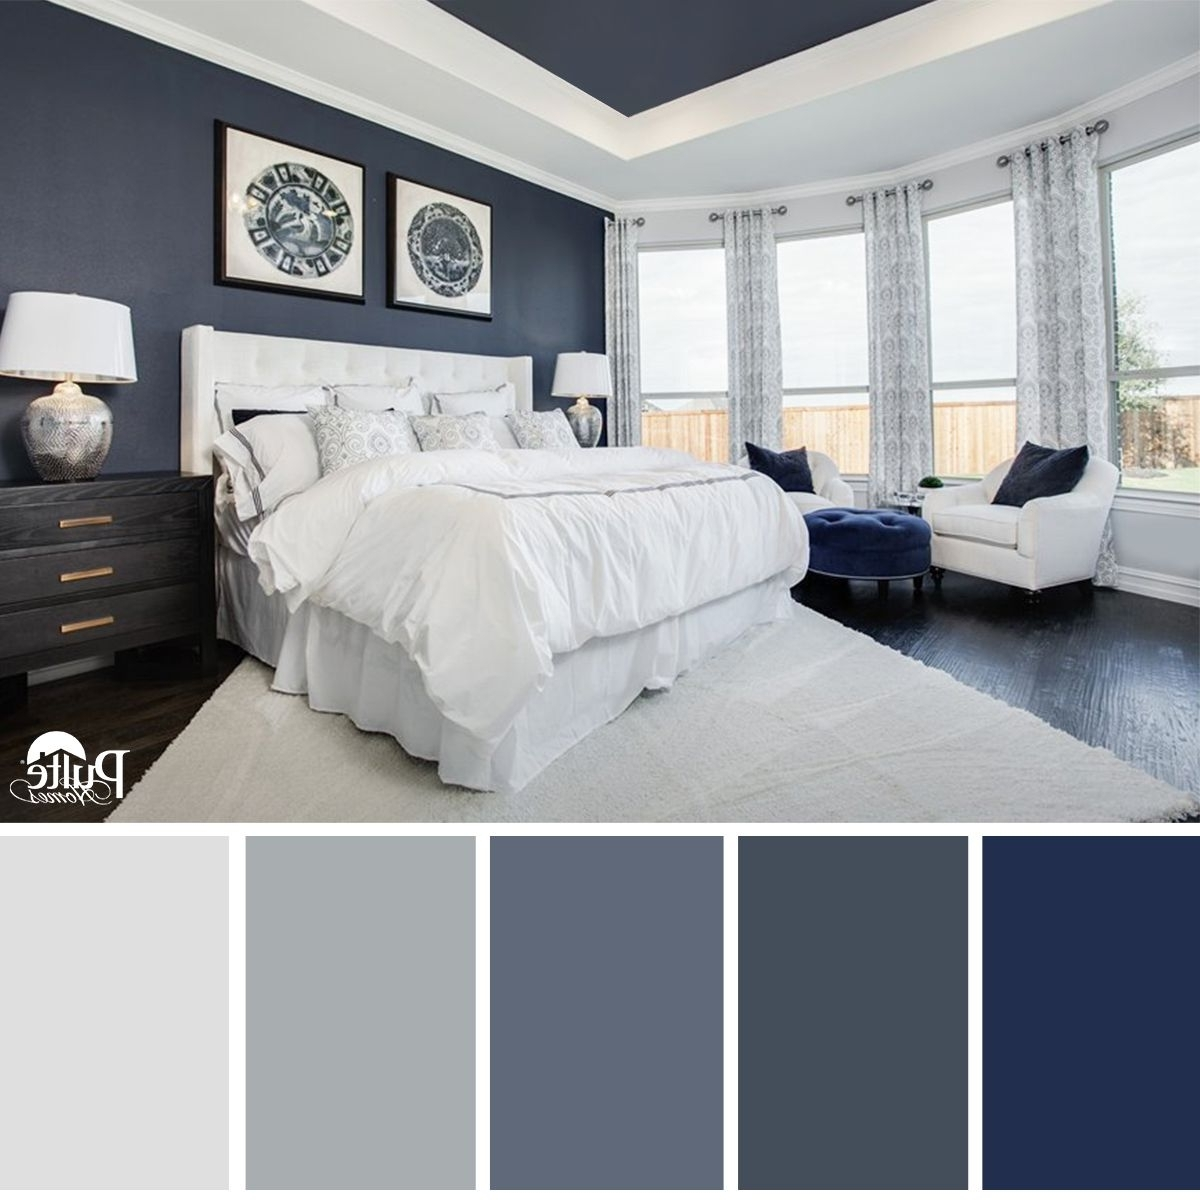 This Bedroom Design Has The Right Idea (View 12 of 15)